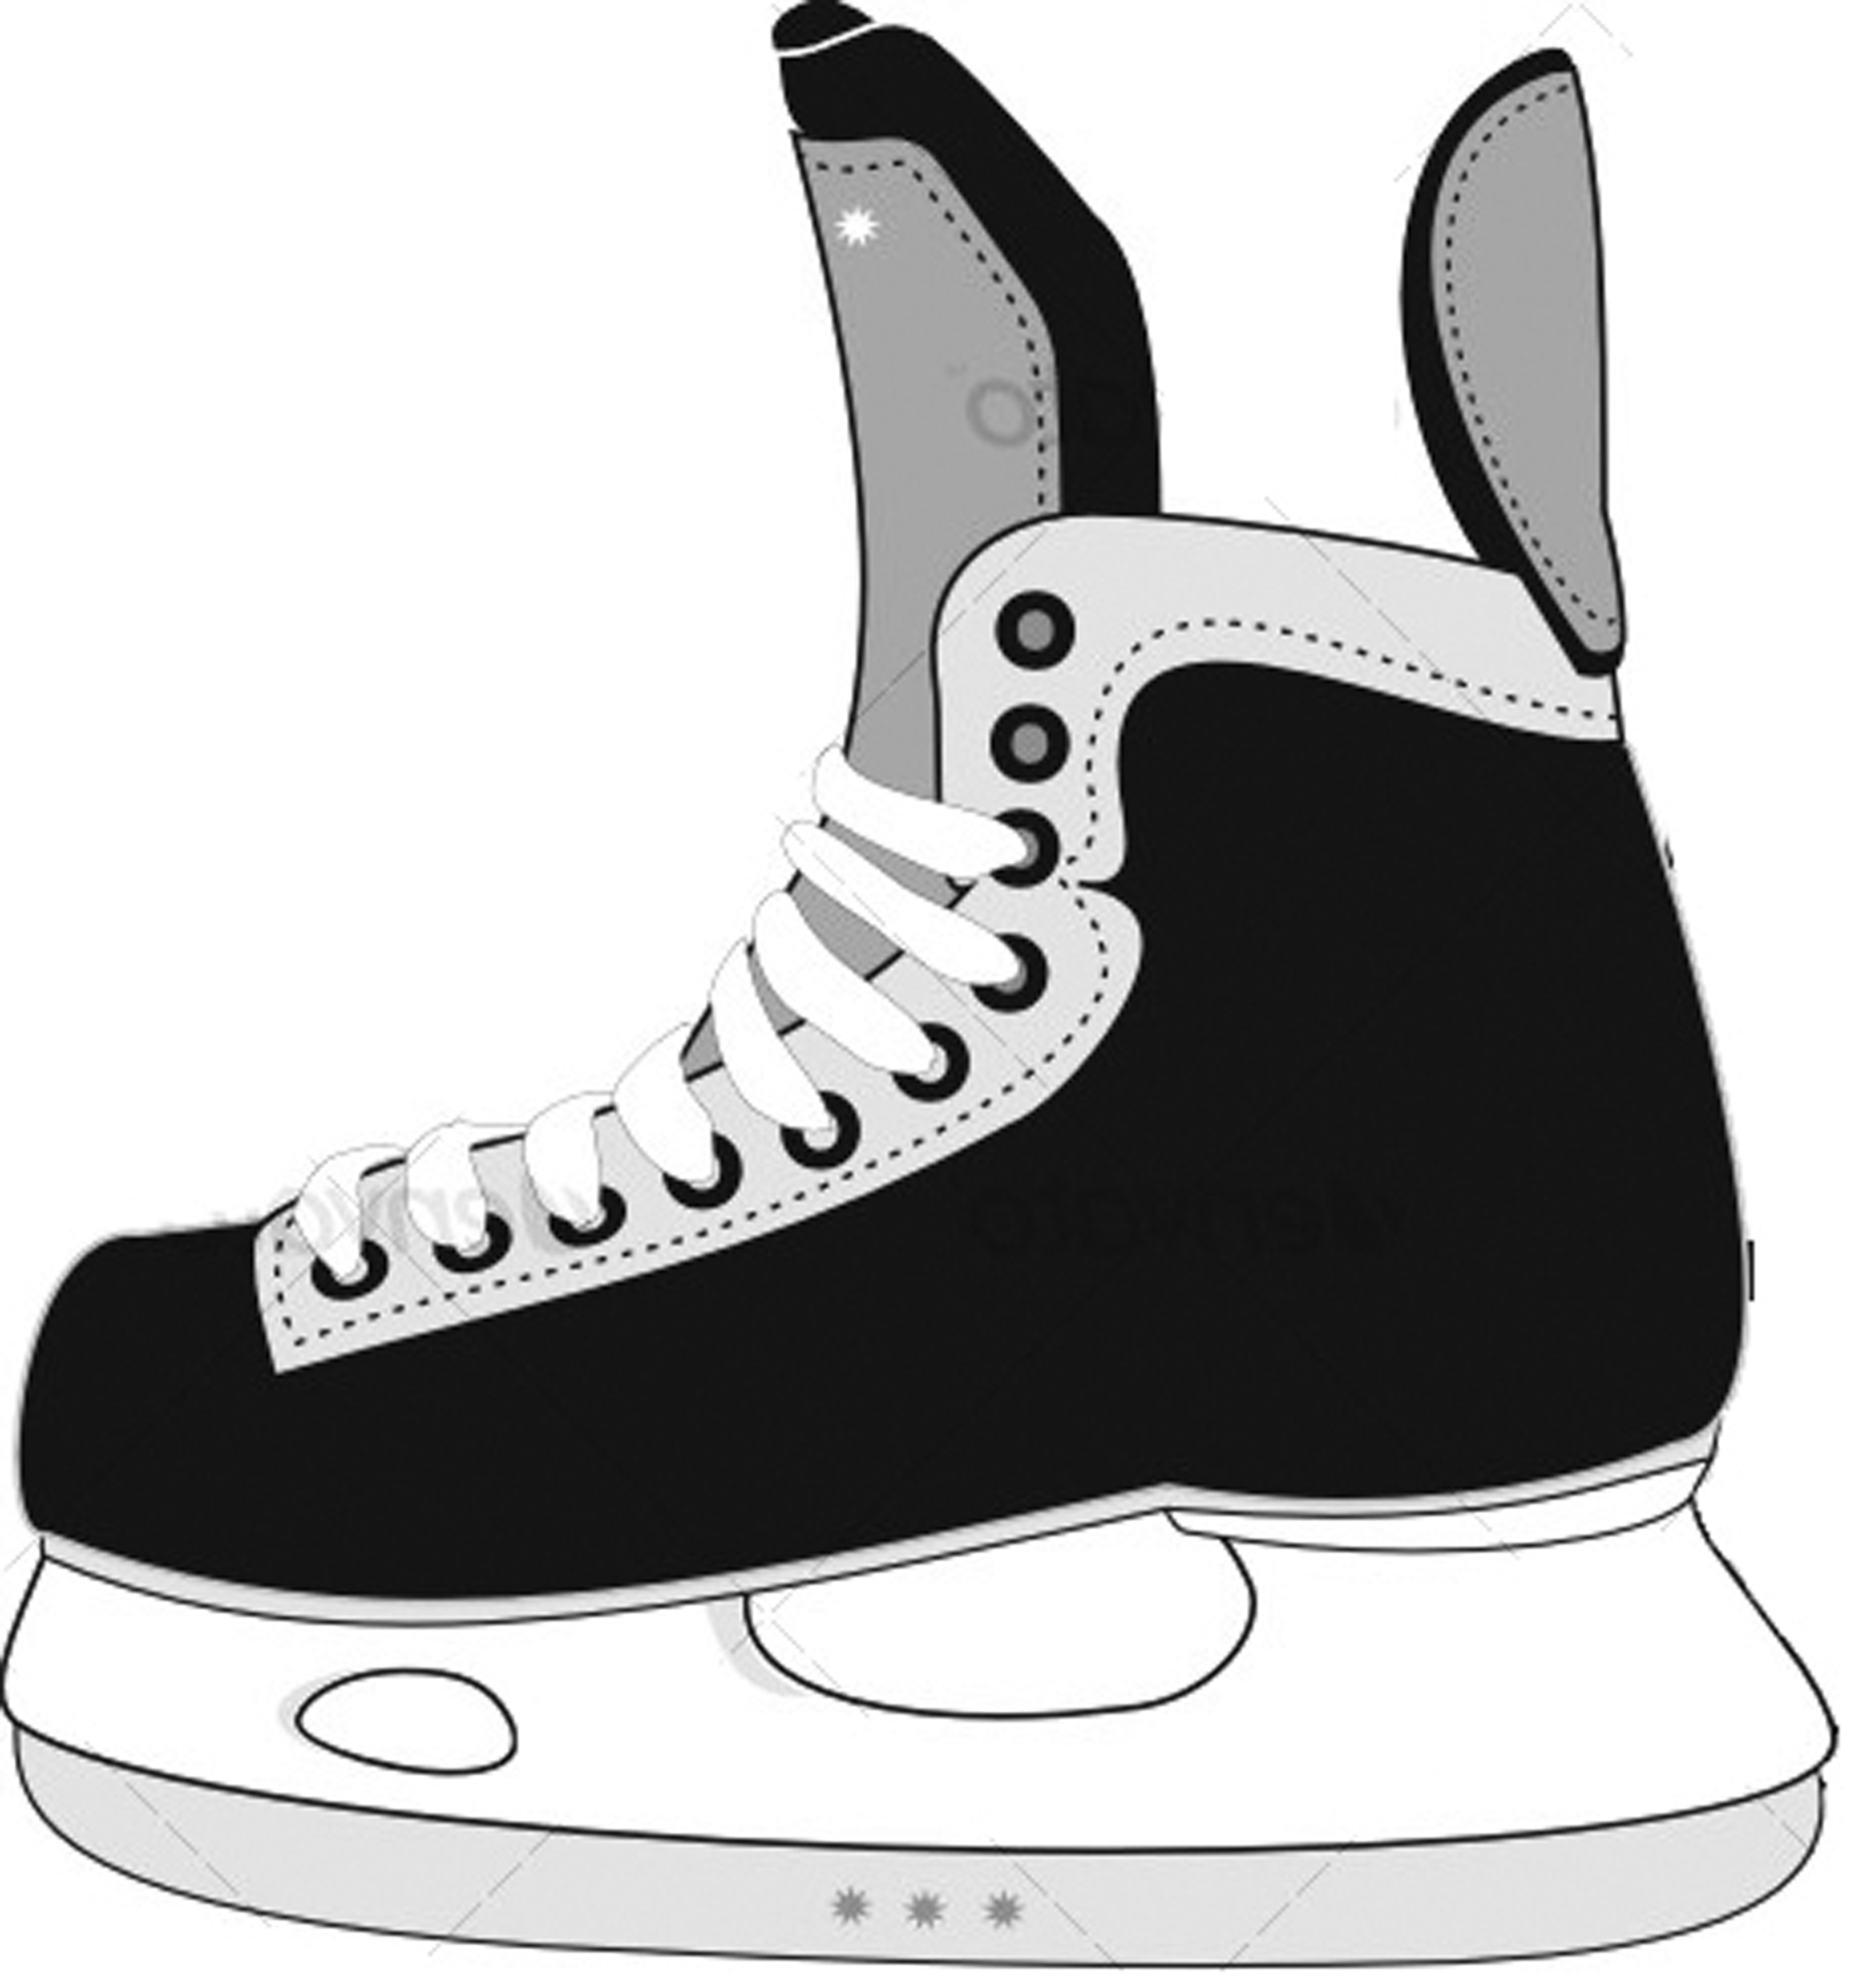 Displaying 20 Images For Cartoon Hockey Skates